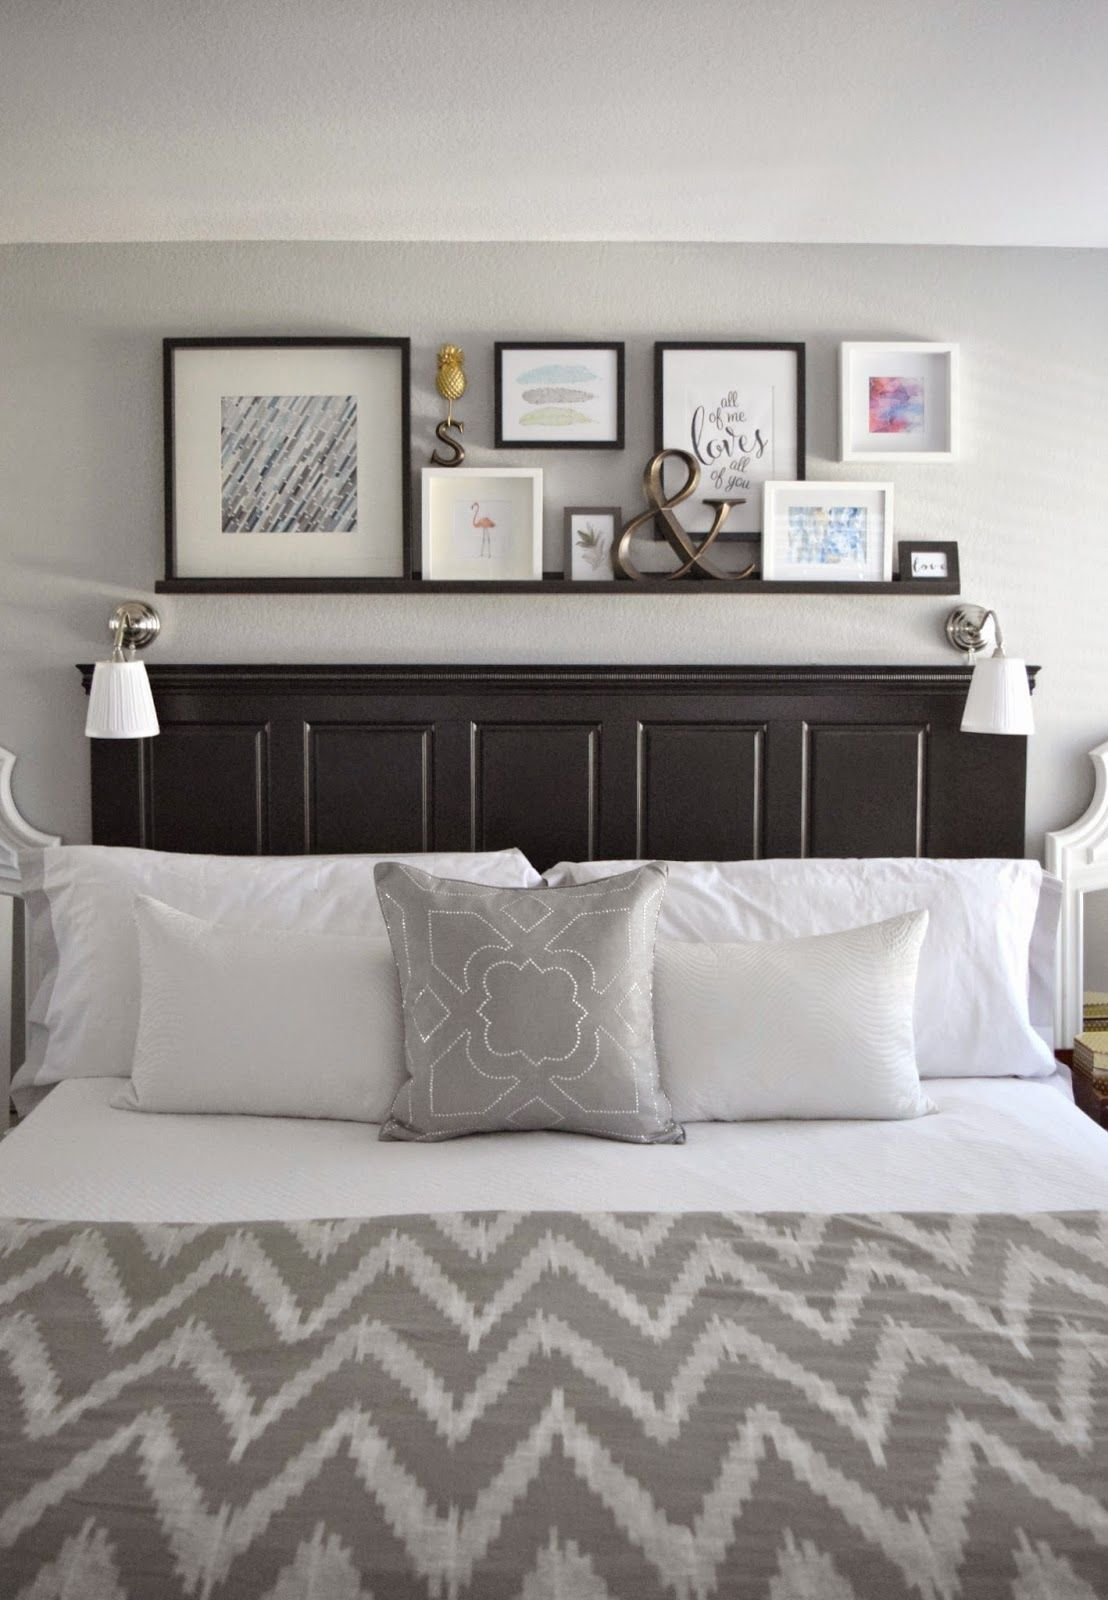 20 Decorating Tricks For Your Bedroom In 2019 Home Decor